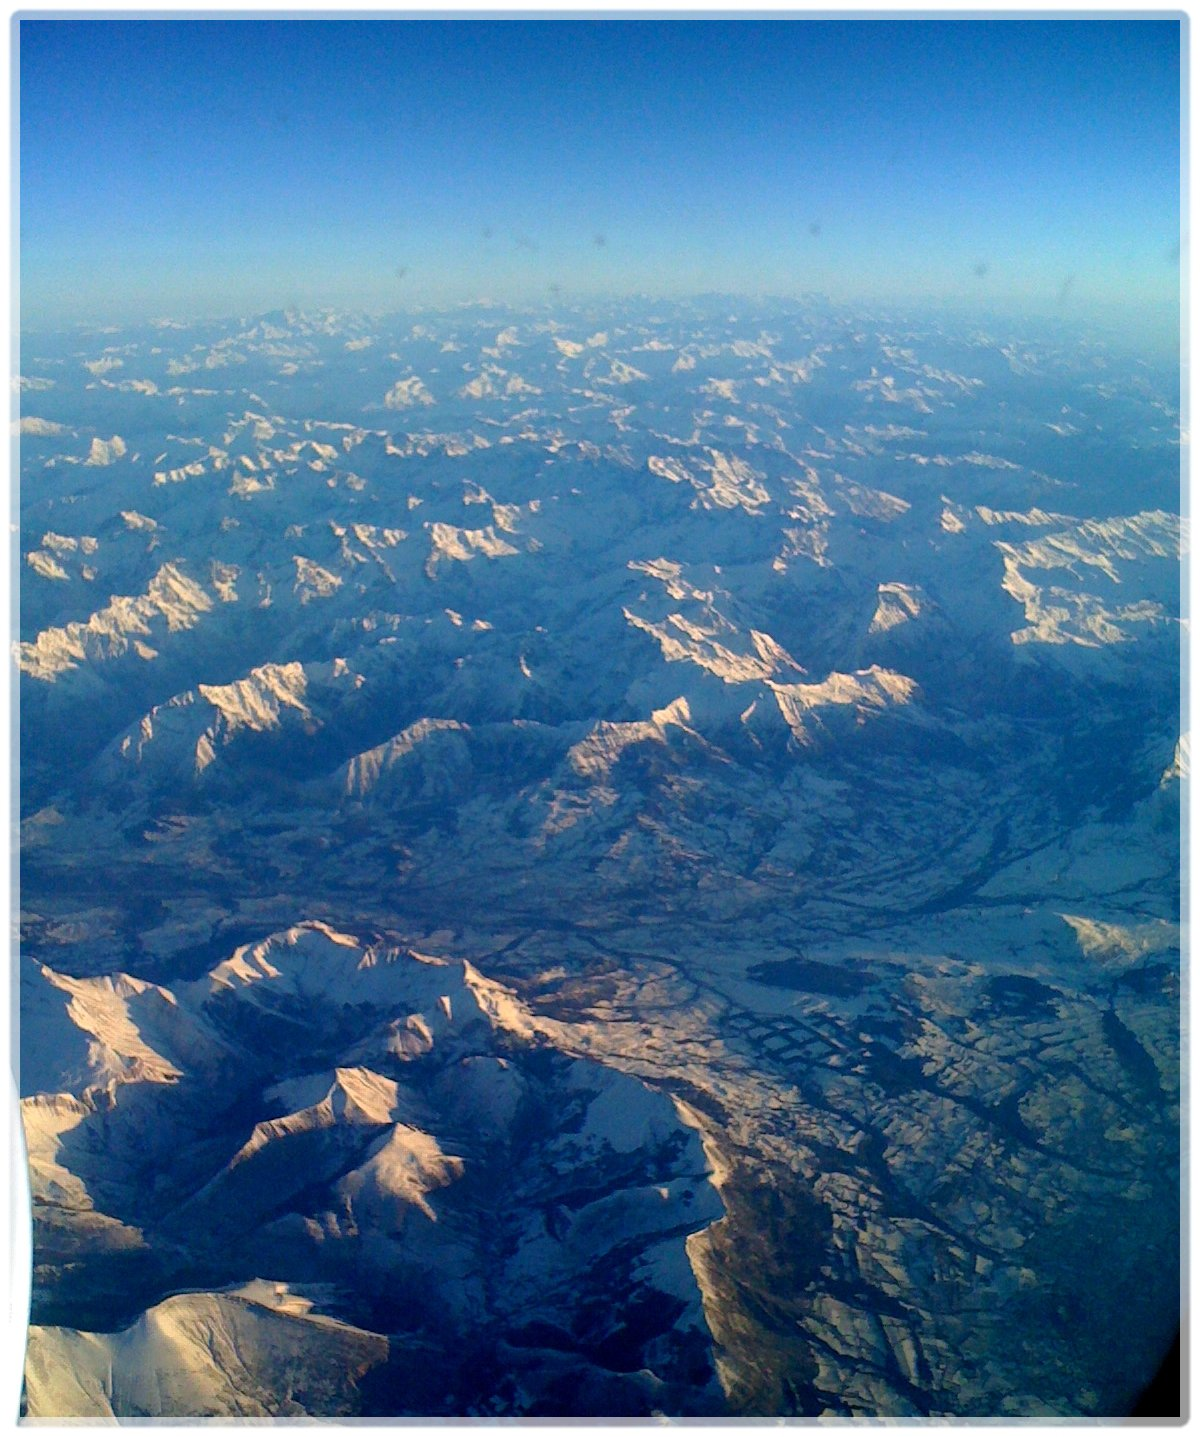 The Alps from a Plane